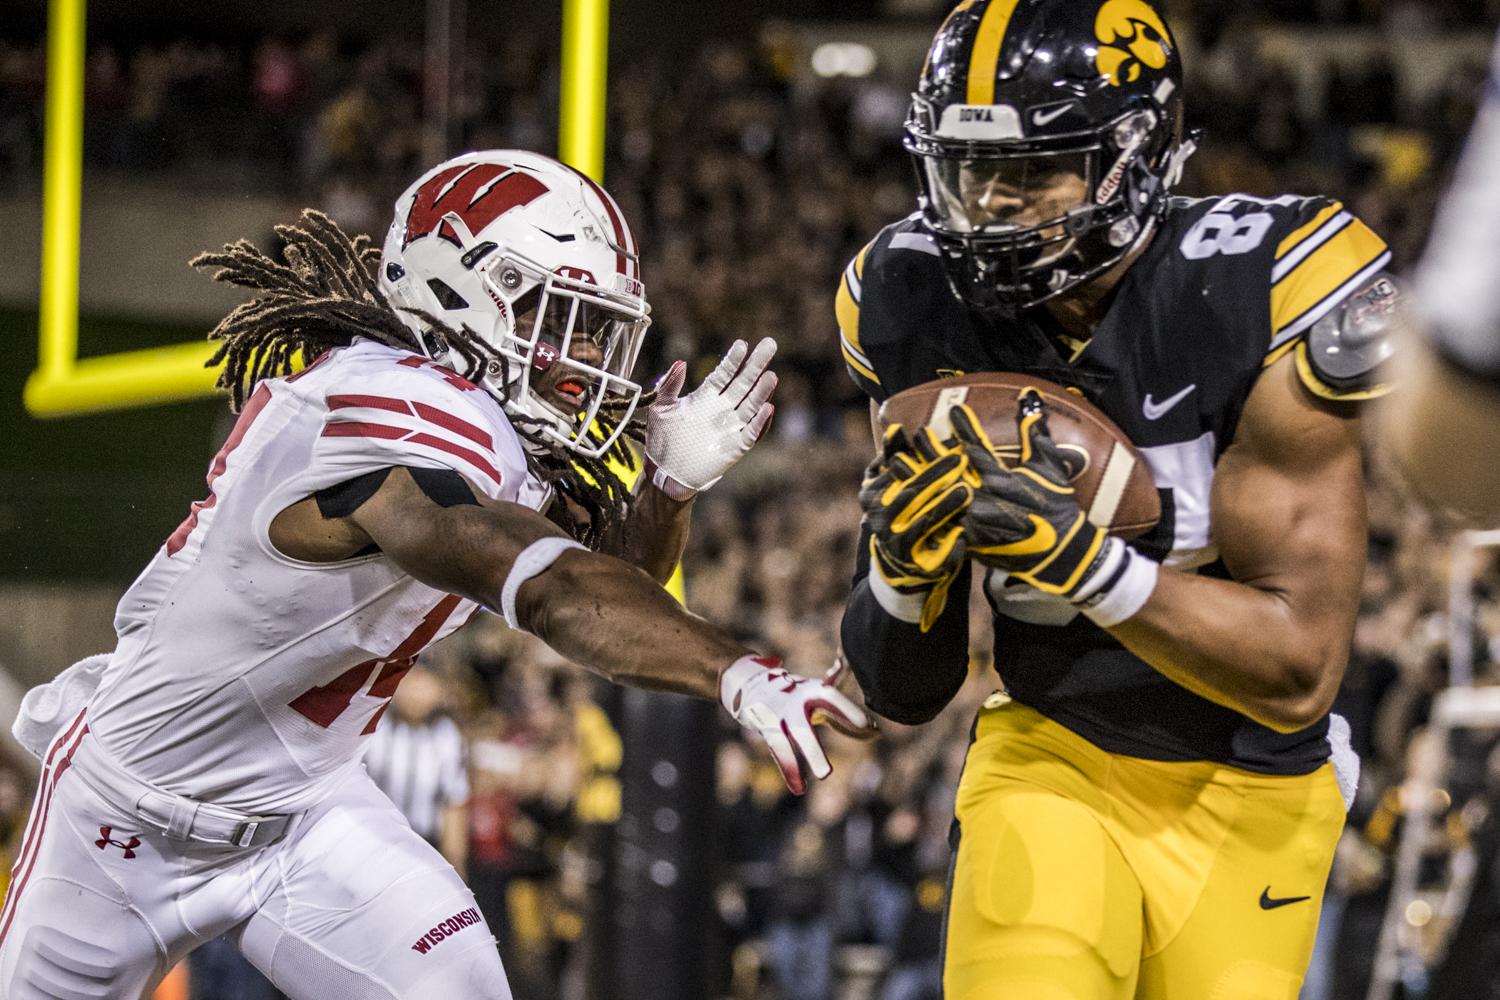 Iowa+tight+end+Noah+Fant+catches+a+touchdown+pass+during+Iowa%27s+game+against+Wisconsin+at+Kinnick+Stadium+on+Saturday%2C+September+22%2C+2018.+The+Badgers+defeated+the+Hawkeyes+28-17.